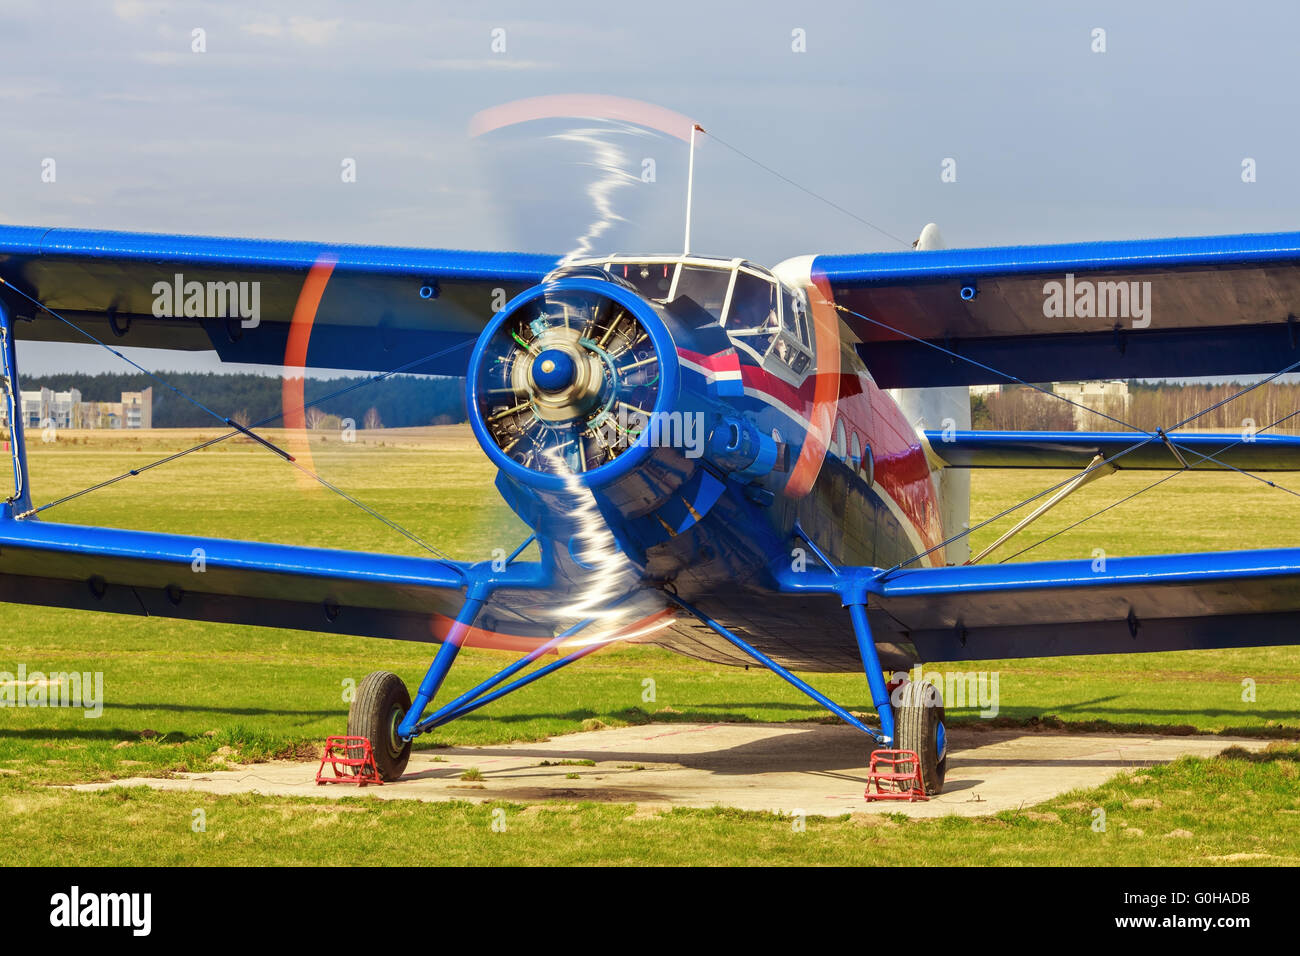 Airplane with the rotating propeller - Stock Image